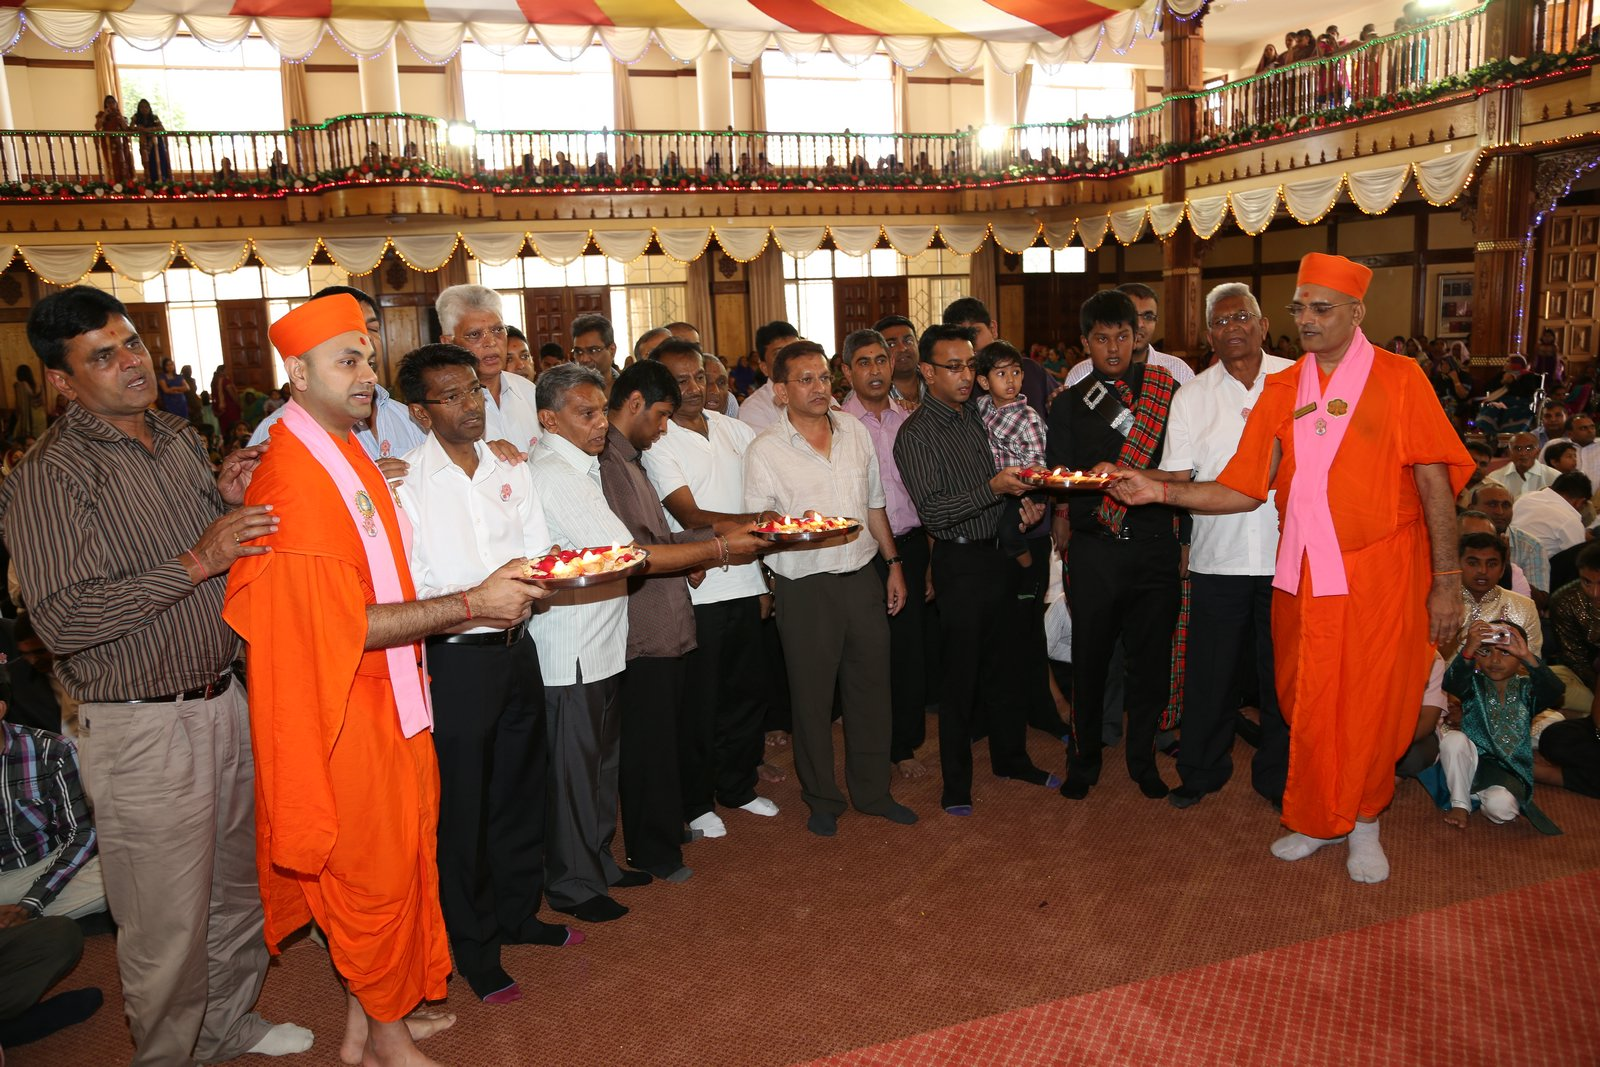 Devotees perform tula aarti to Lord Swaminarayan and Acharya Swamishree